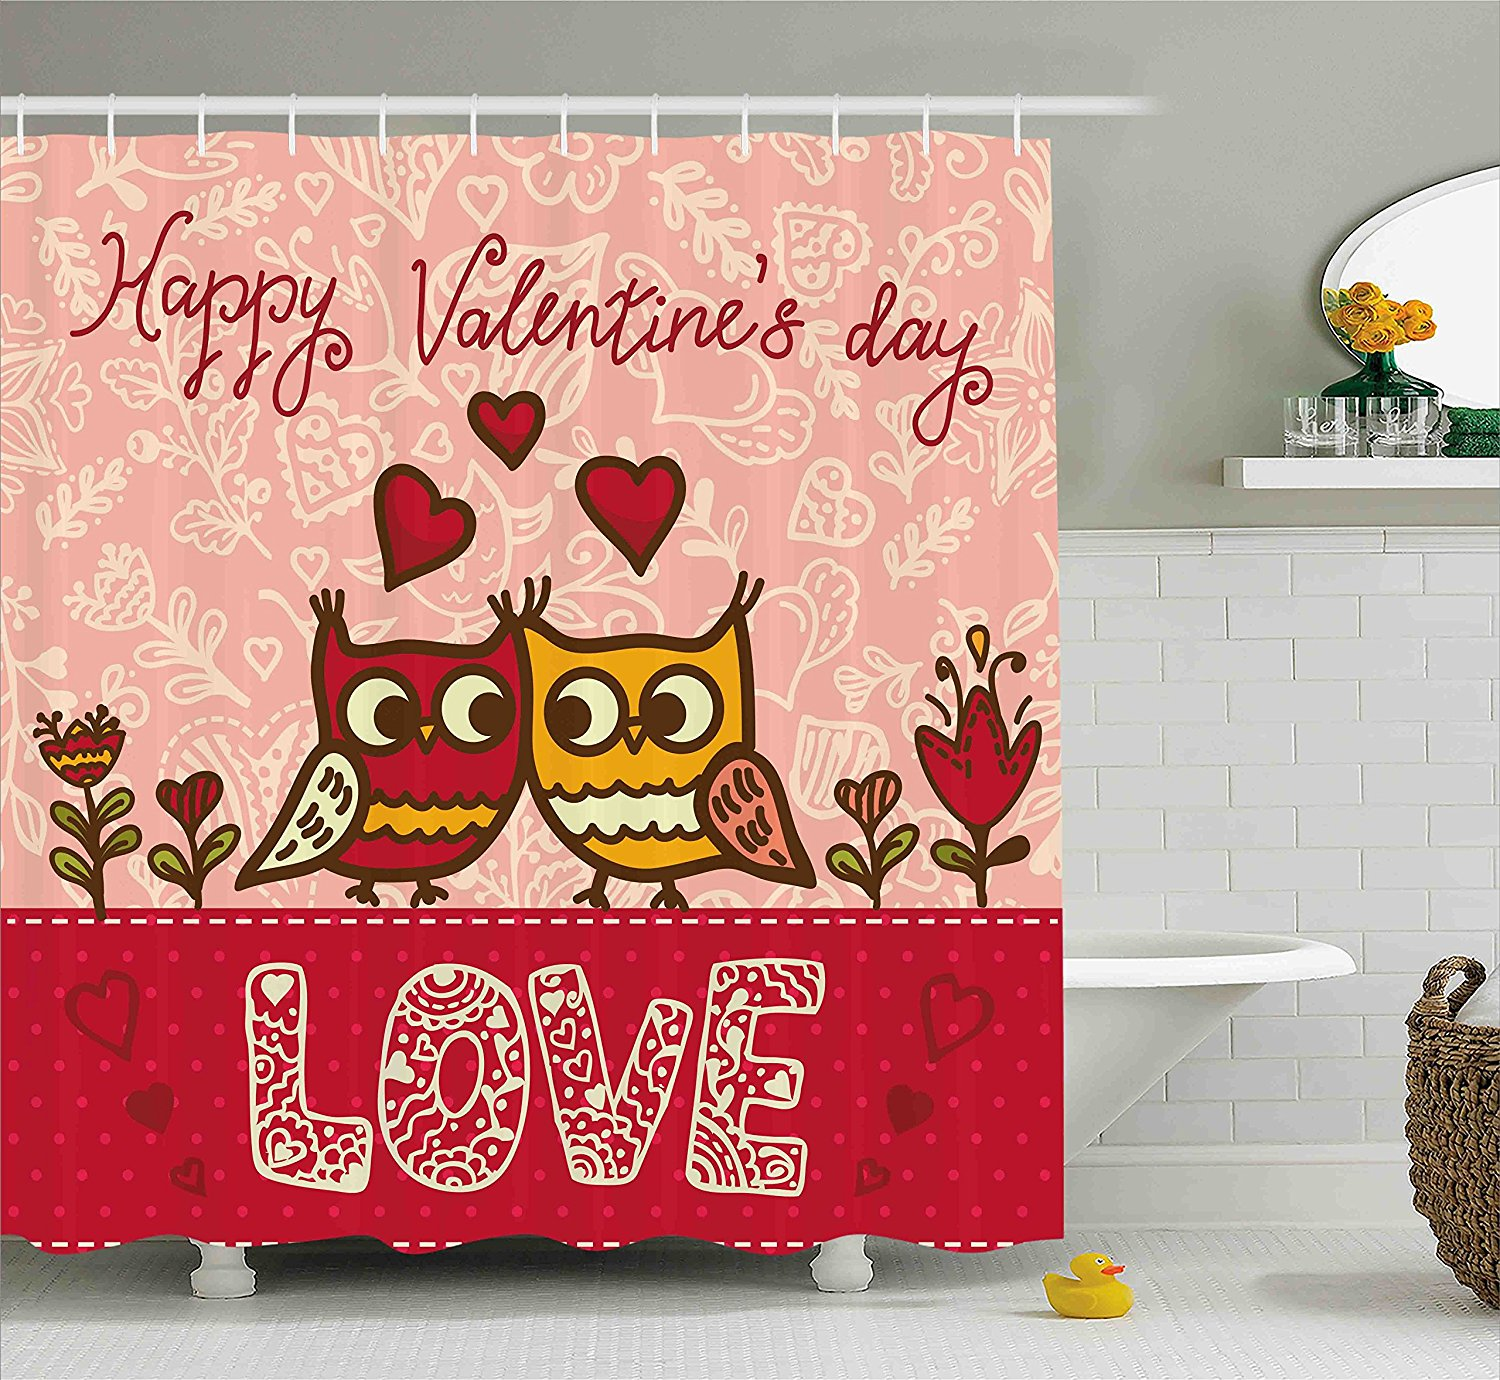 WARM TOUR Valentines Day Owls in Love Fasiion Shower Curtain Polyester  Curtain Hotel/Bathroom With - Online Get Cheap Valentine Shower Curtains -Aliexpress.com